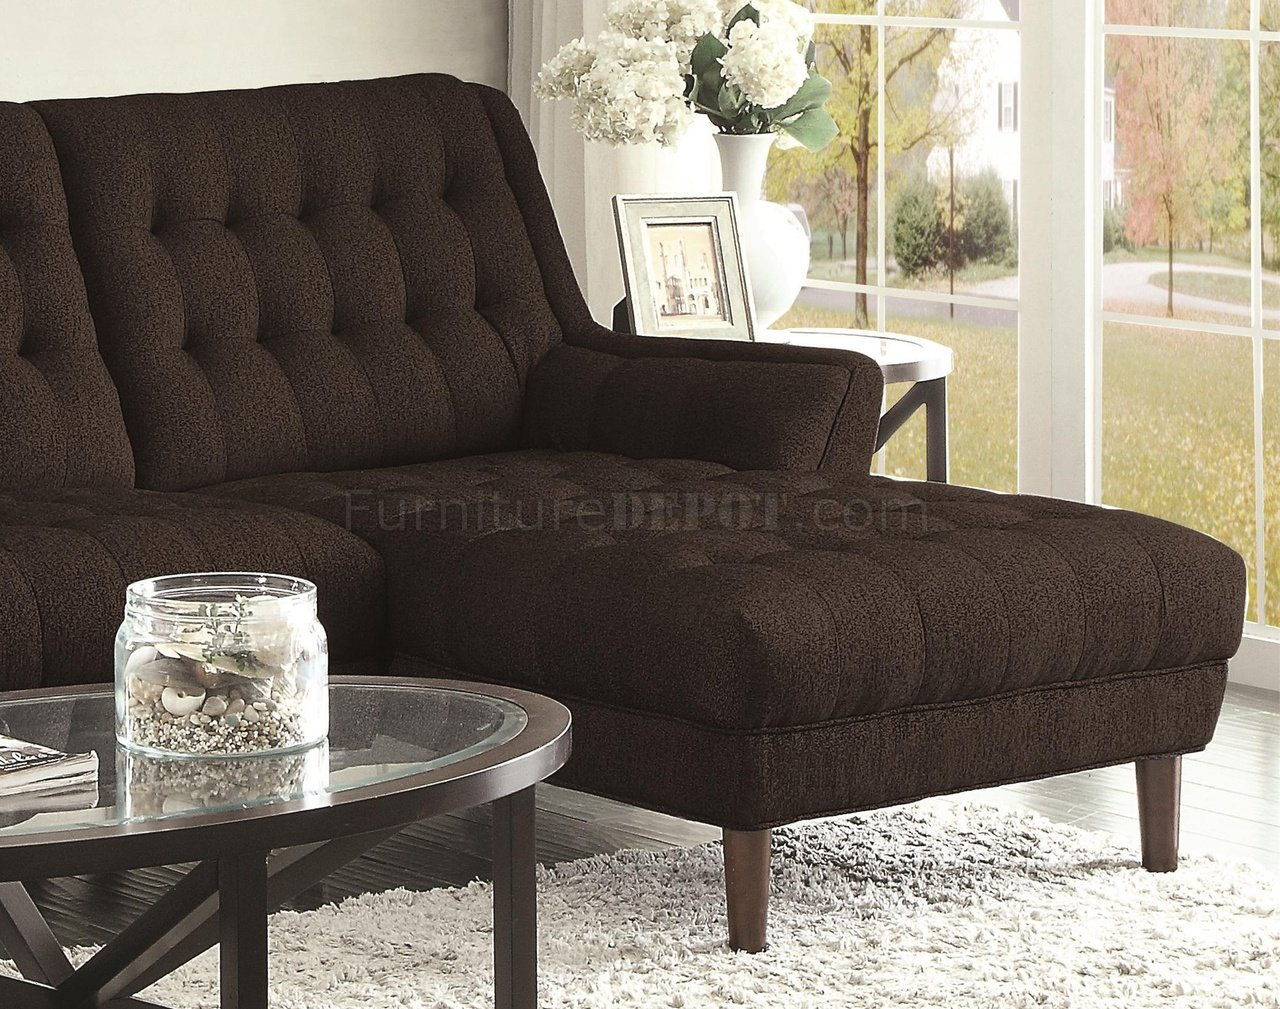 Super Natalia Sectional Sofa 503778 In Black Fabric By Coaster Gmtry Best Dining Table And Chair Ideas Images Gmtryco